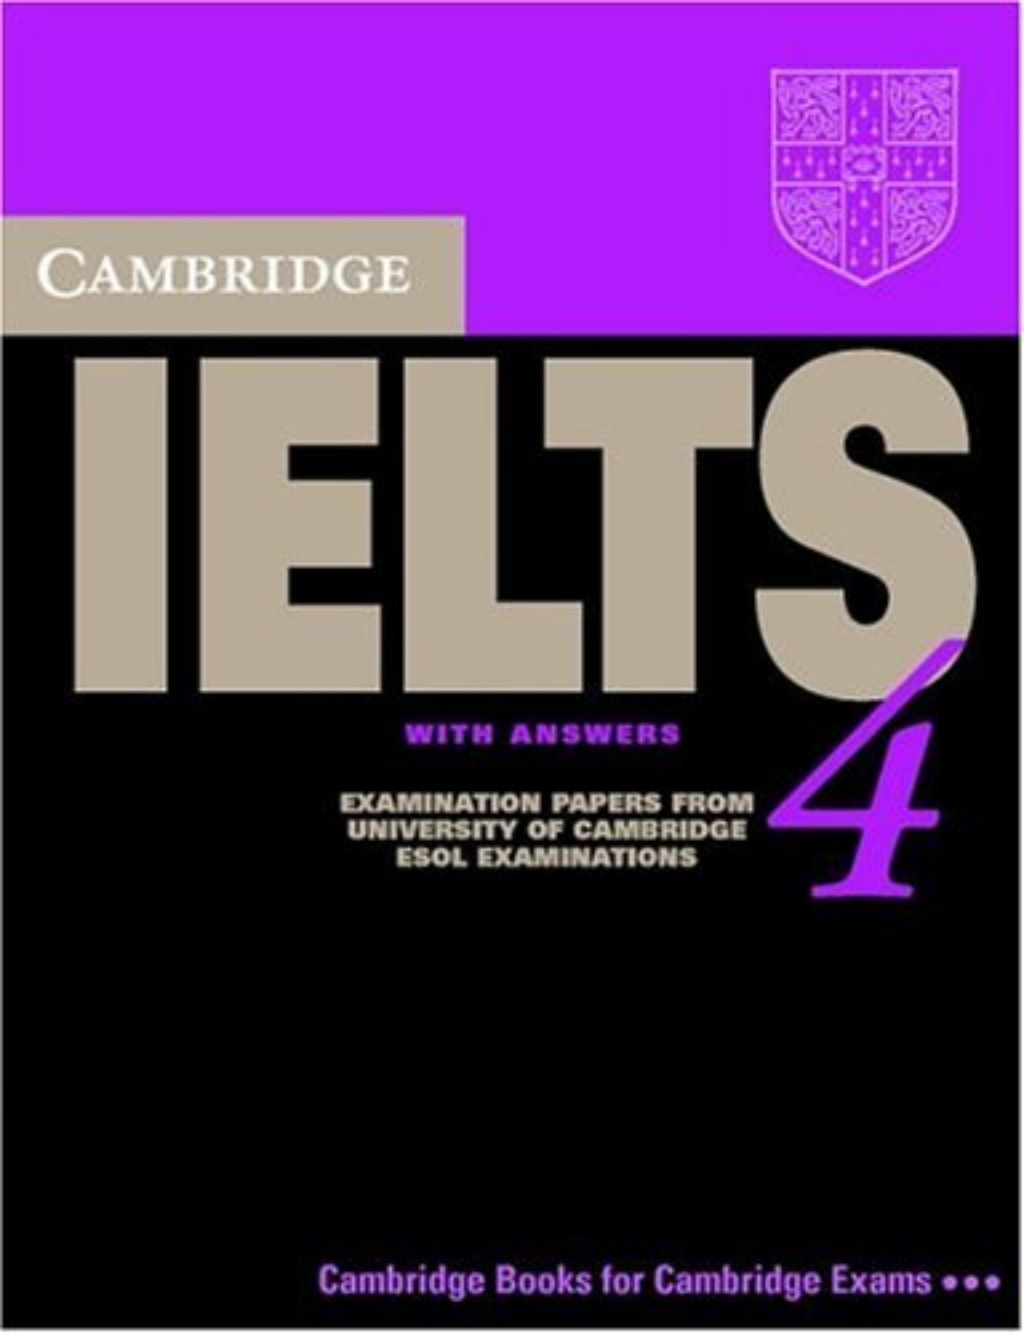 Cambridge practice tests for ielts 4 by shqiprim cani via slideshare cambridge practice tests for ielts 4 by shqiprim cani via slideshare fandeluxe Image collections